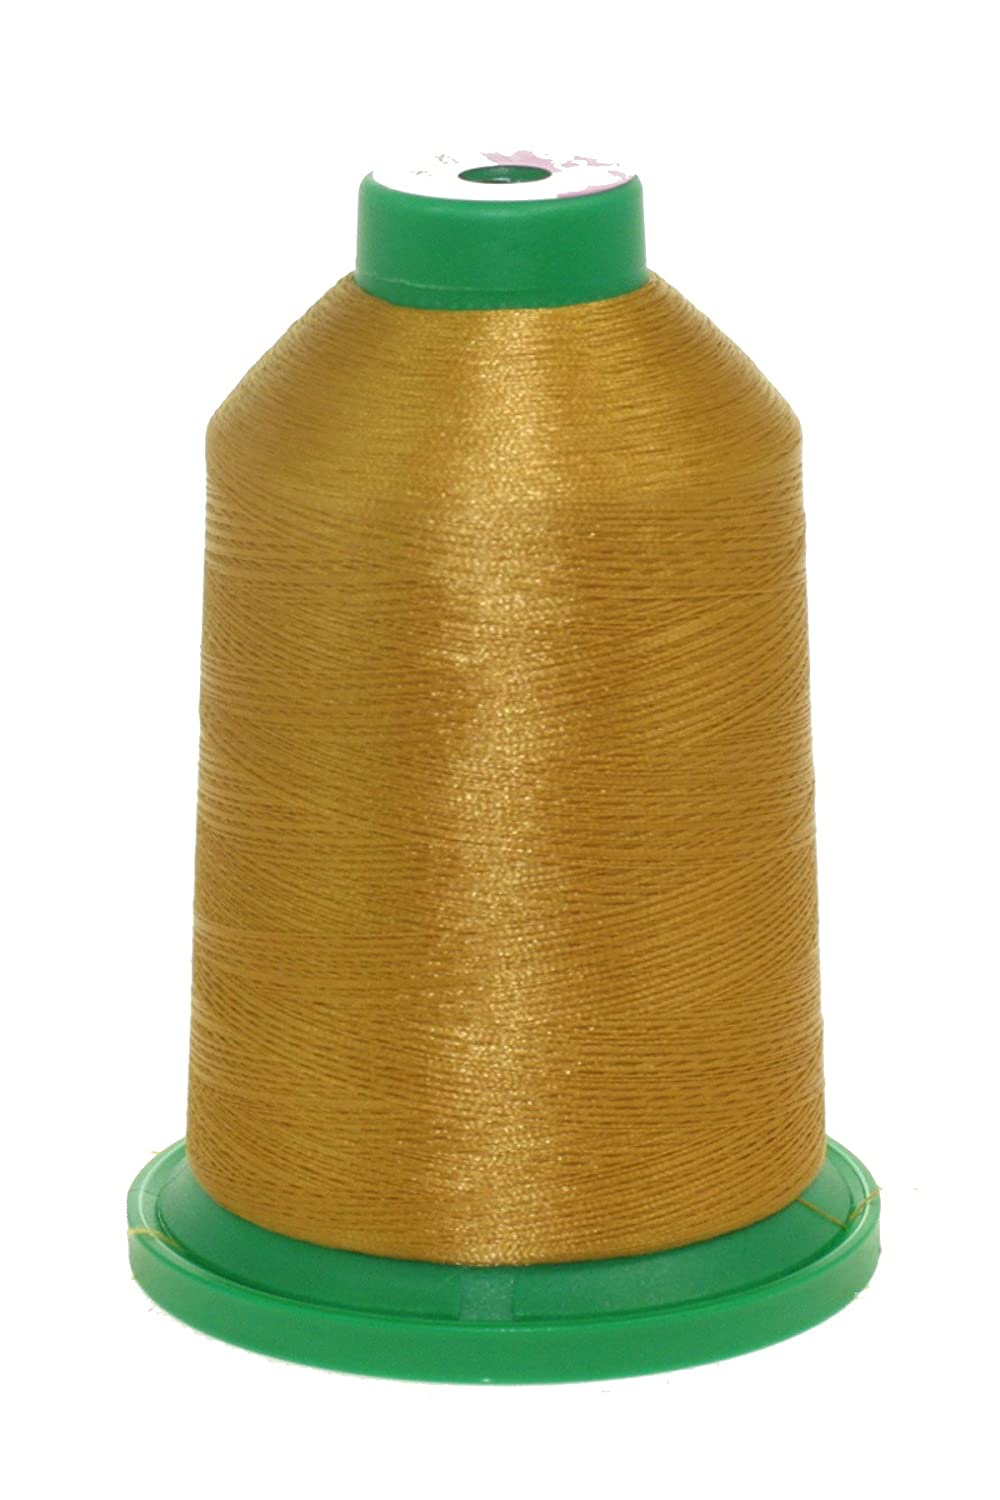 0870 Isacord Embroidery Thread 5000m 0800-0874